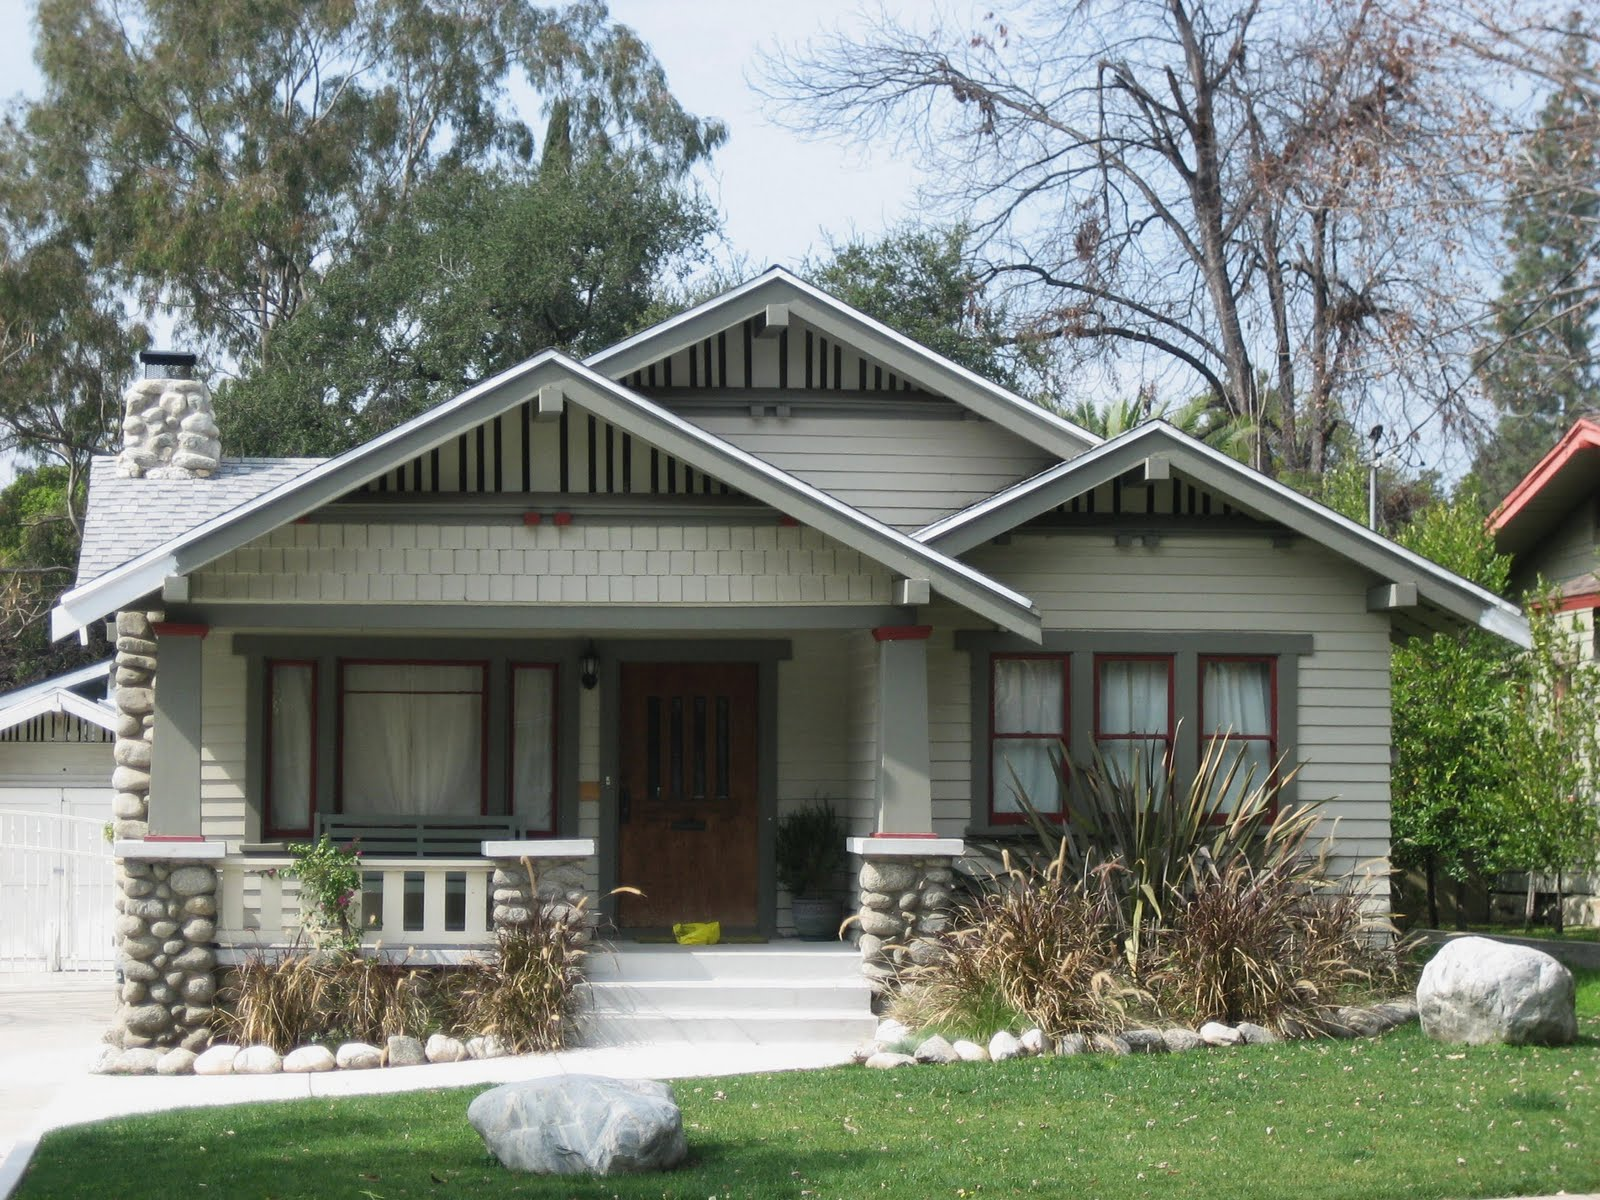 L.A. Places: Bungalow Heaven